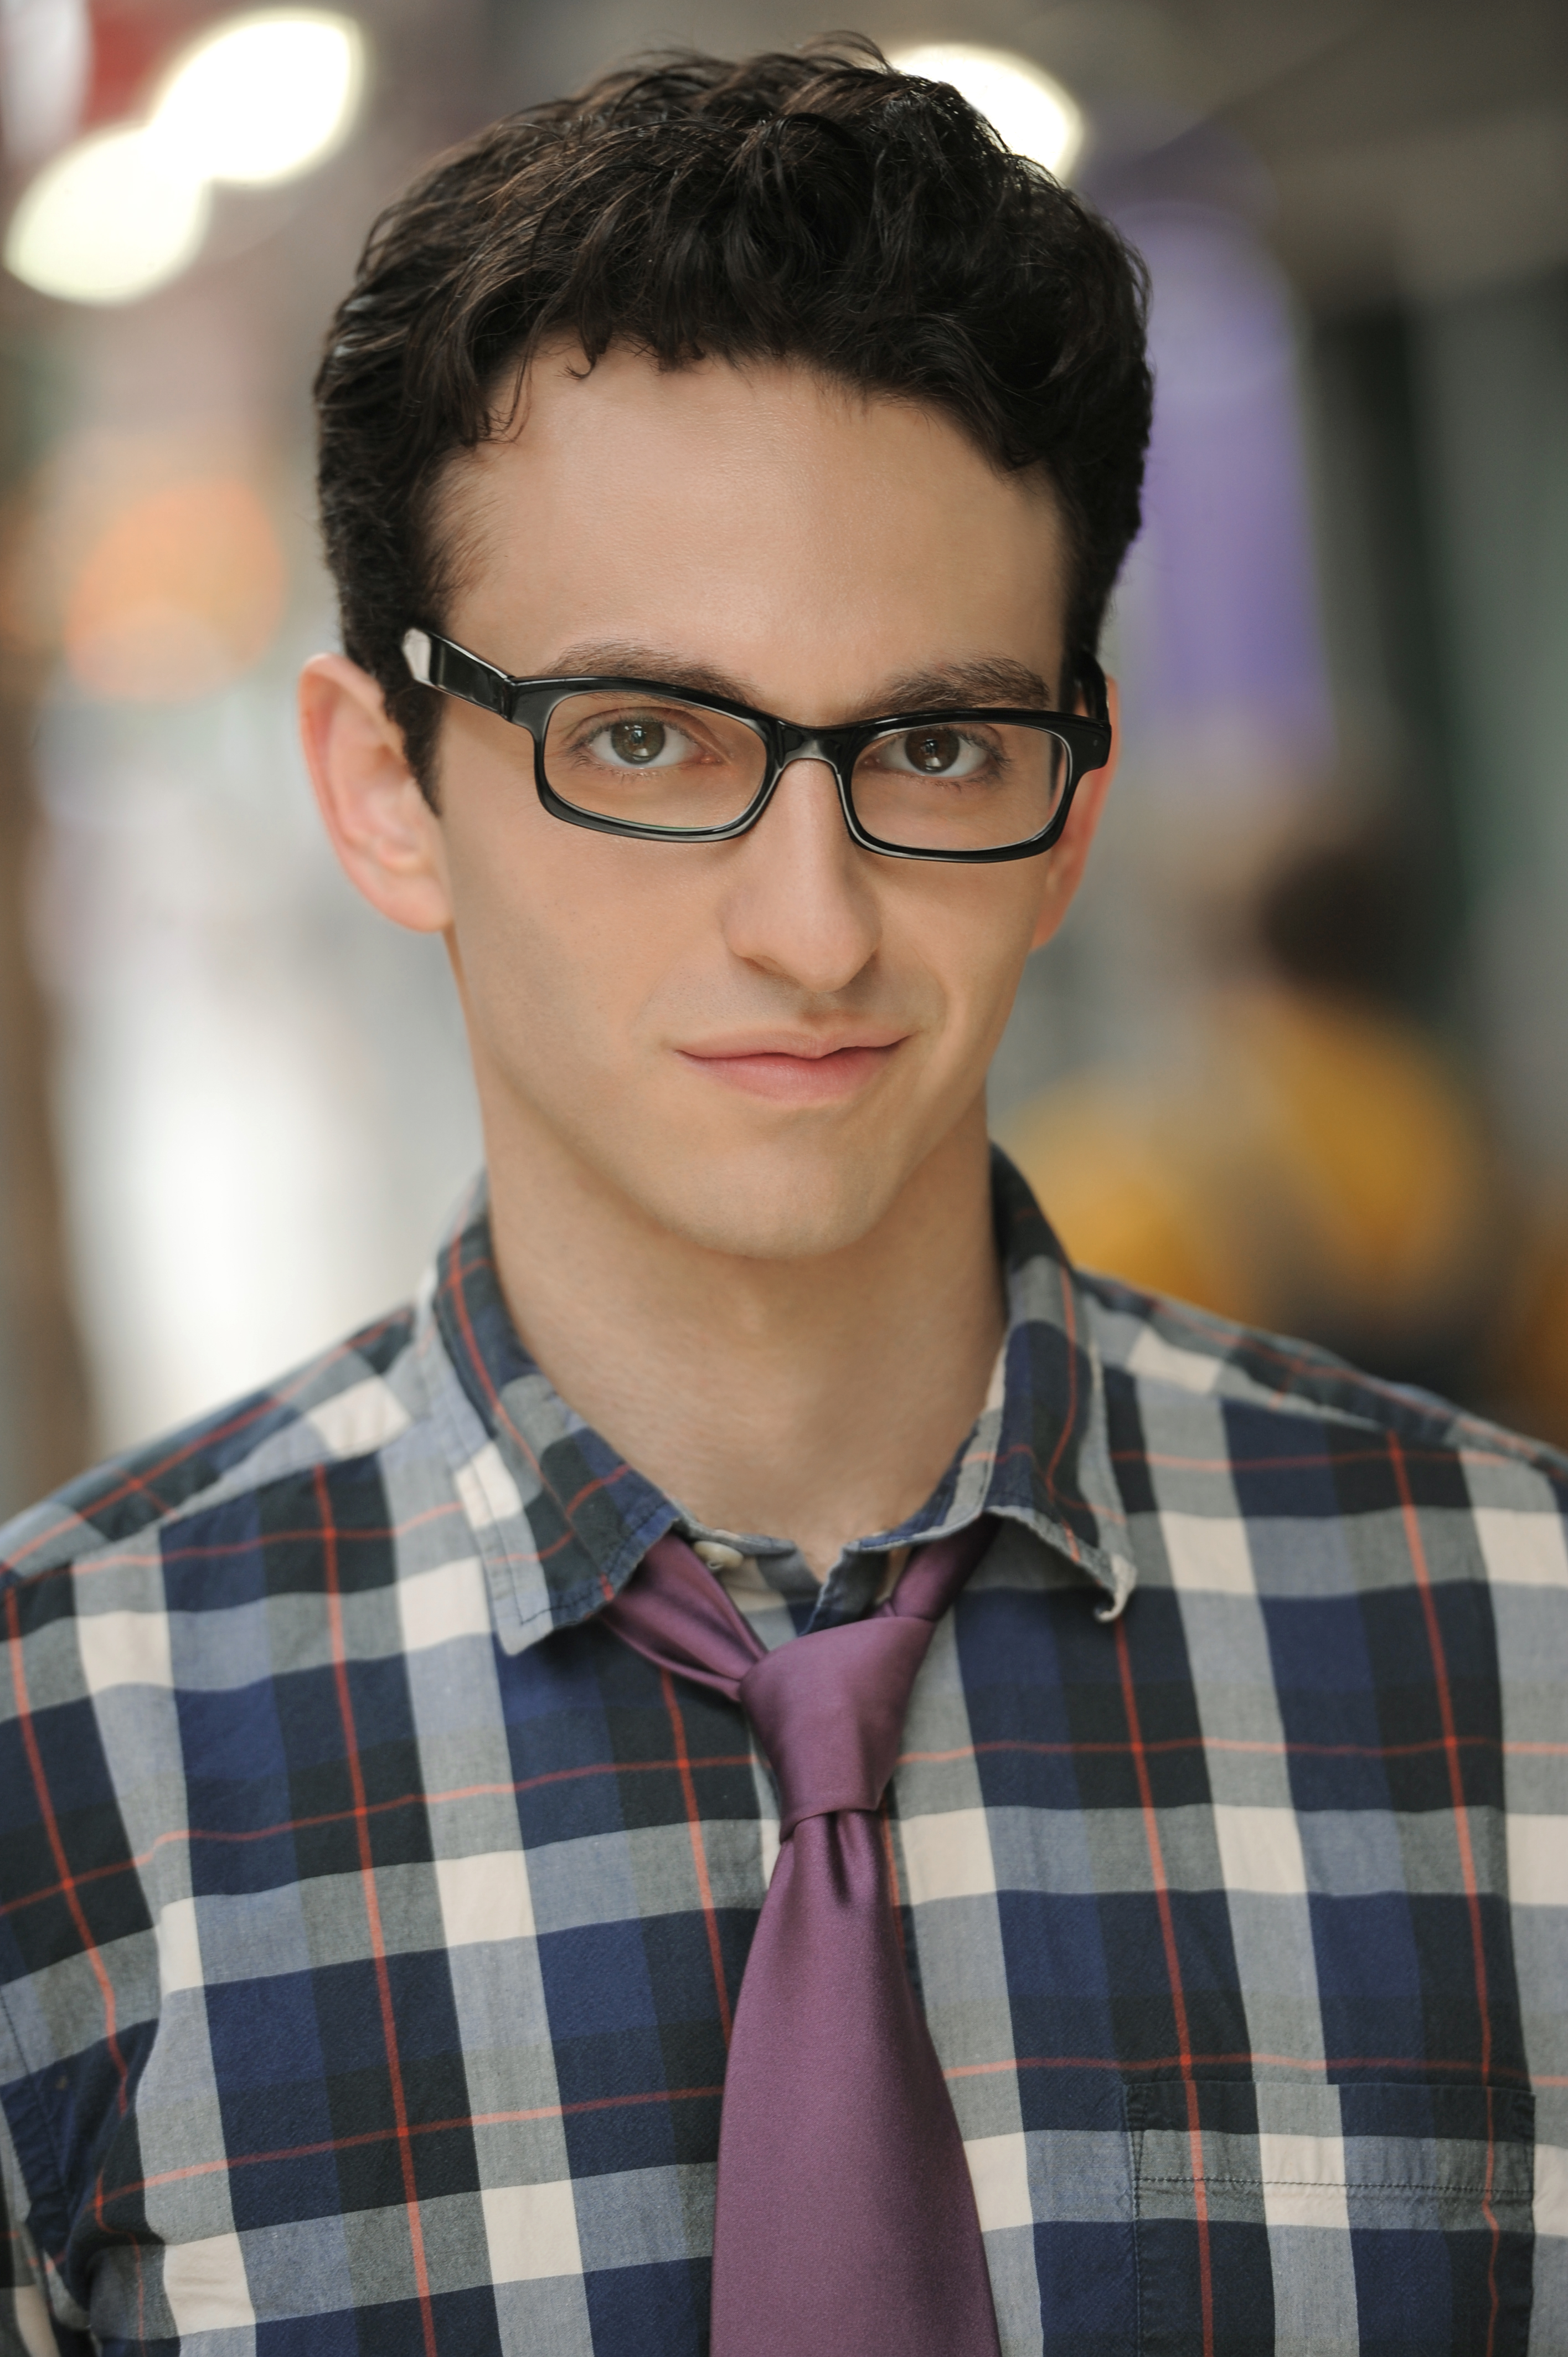 BWW Interview: Funnyman Gianmarco Soresi on His New Sketch Comedy Series, 'Matza Pizza,' Creative Freedom, and Why Our World Needs A Laugh Every Now and Then